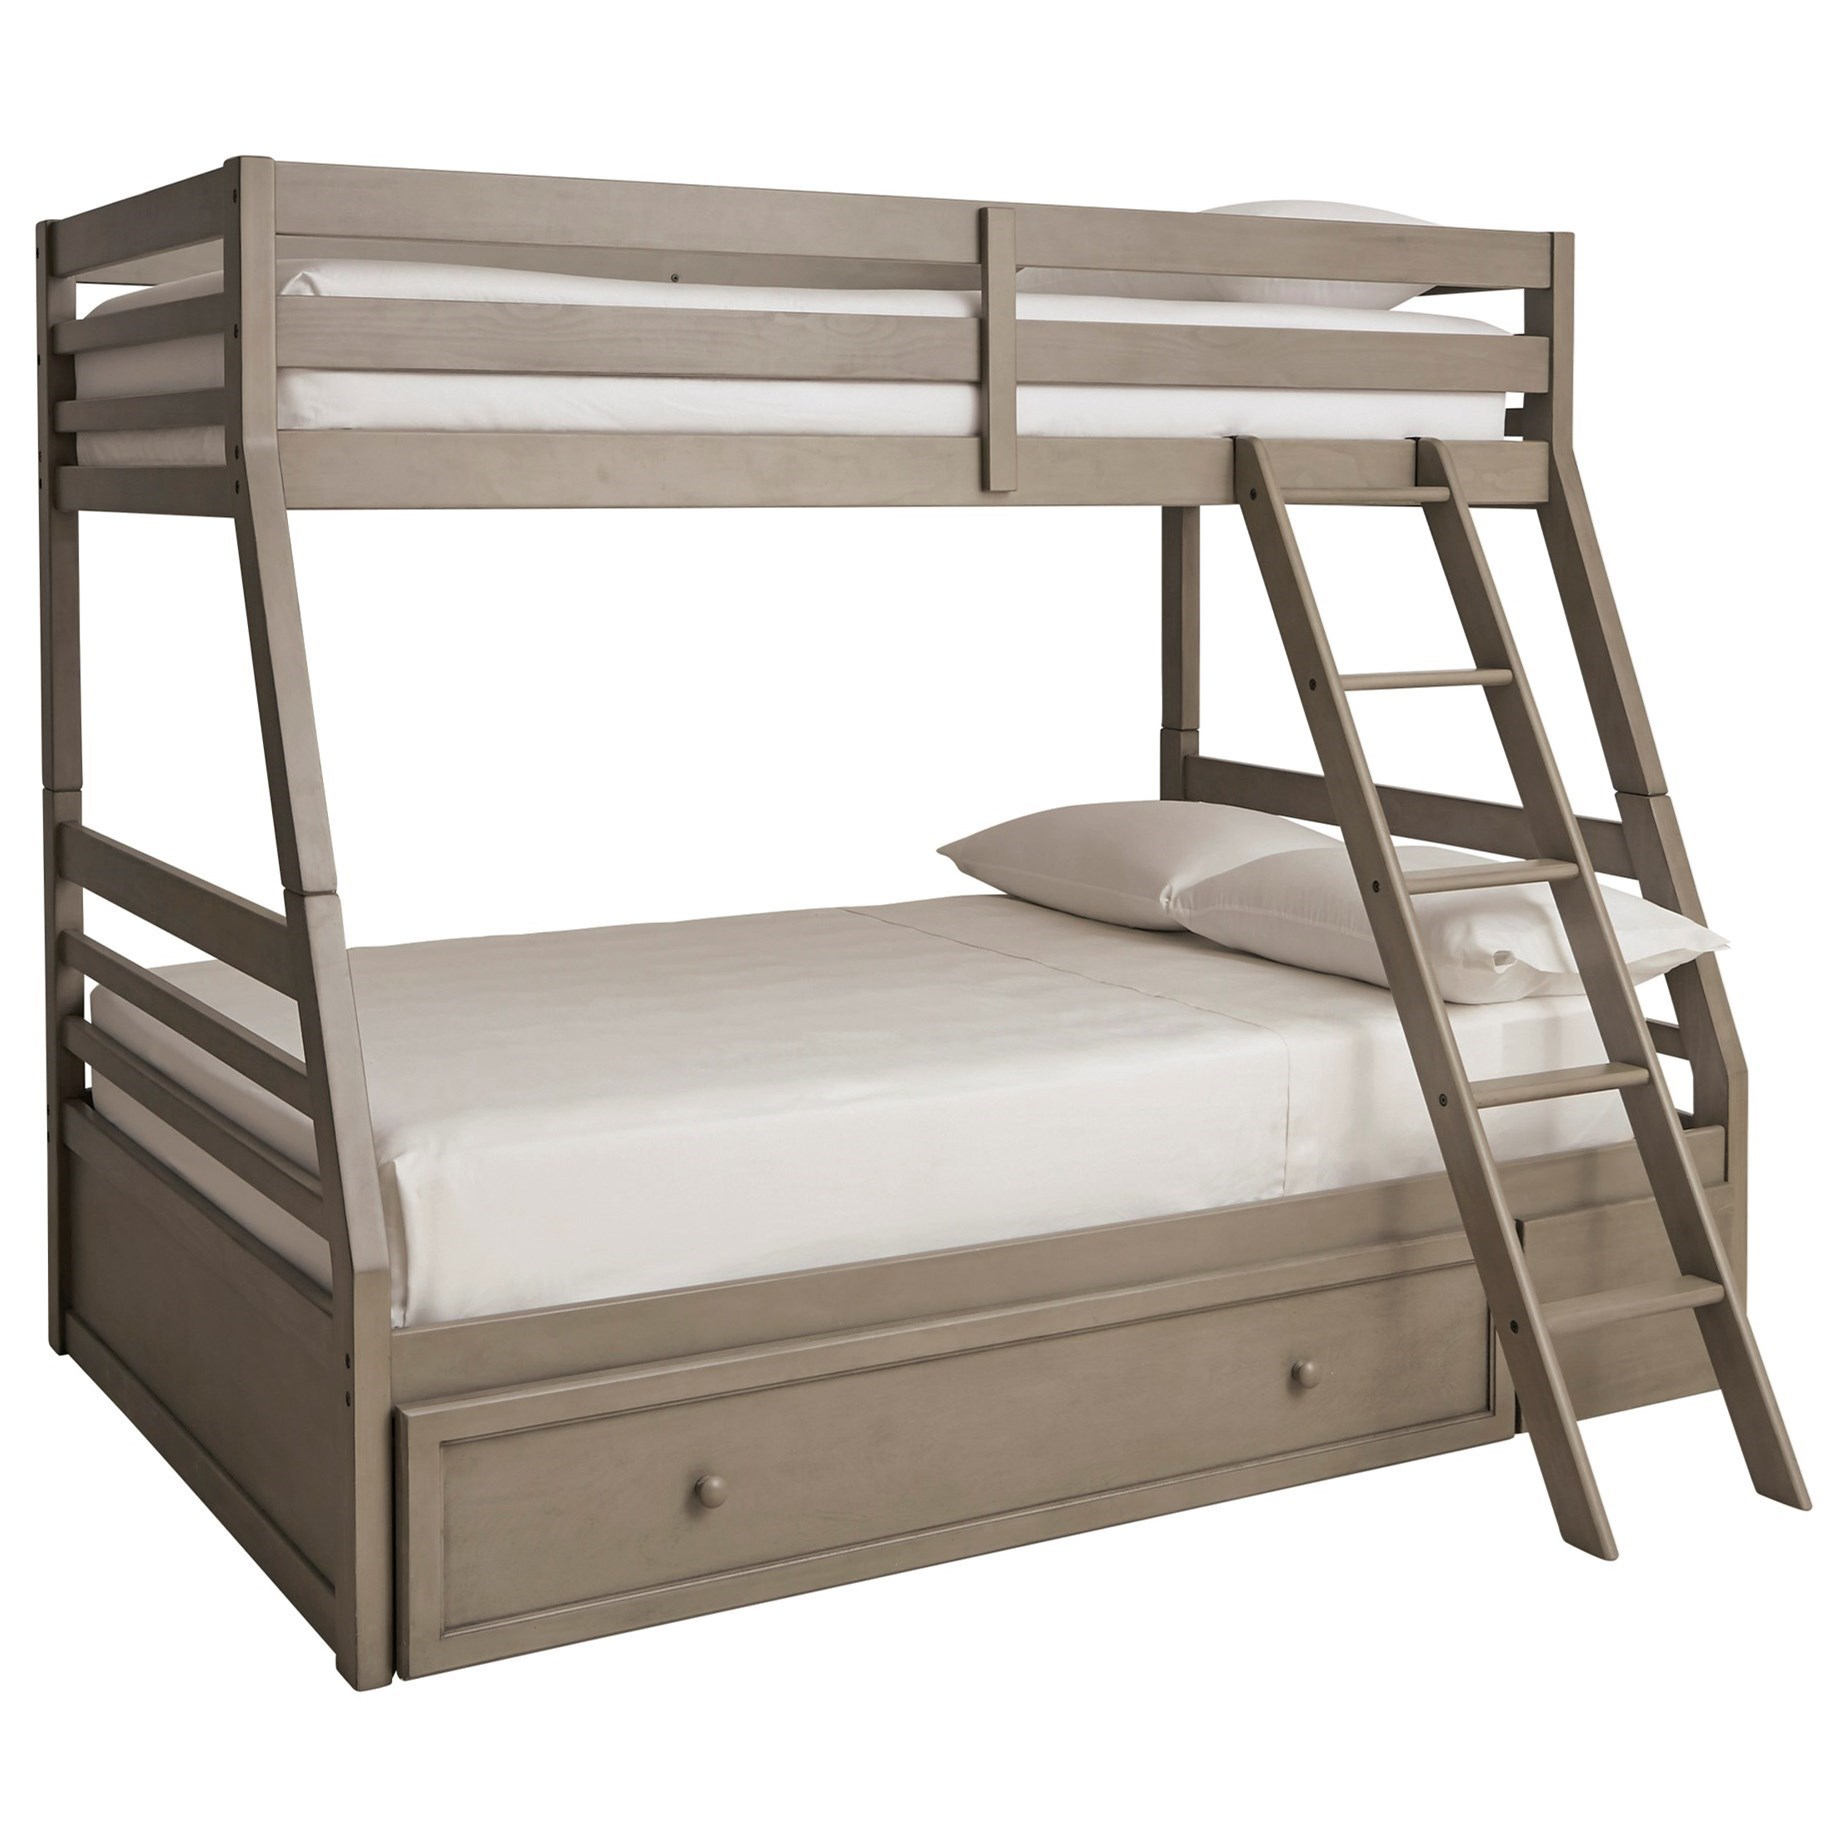 Lettner Twin/Full Bunk Bed w/ Under Bed Storage by Signature Design by Ashley at Beck's Furniture